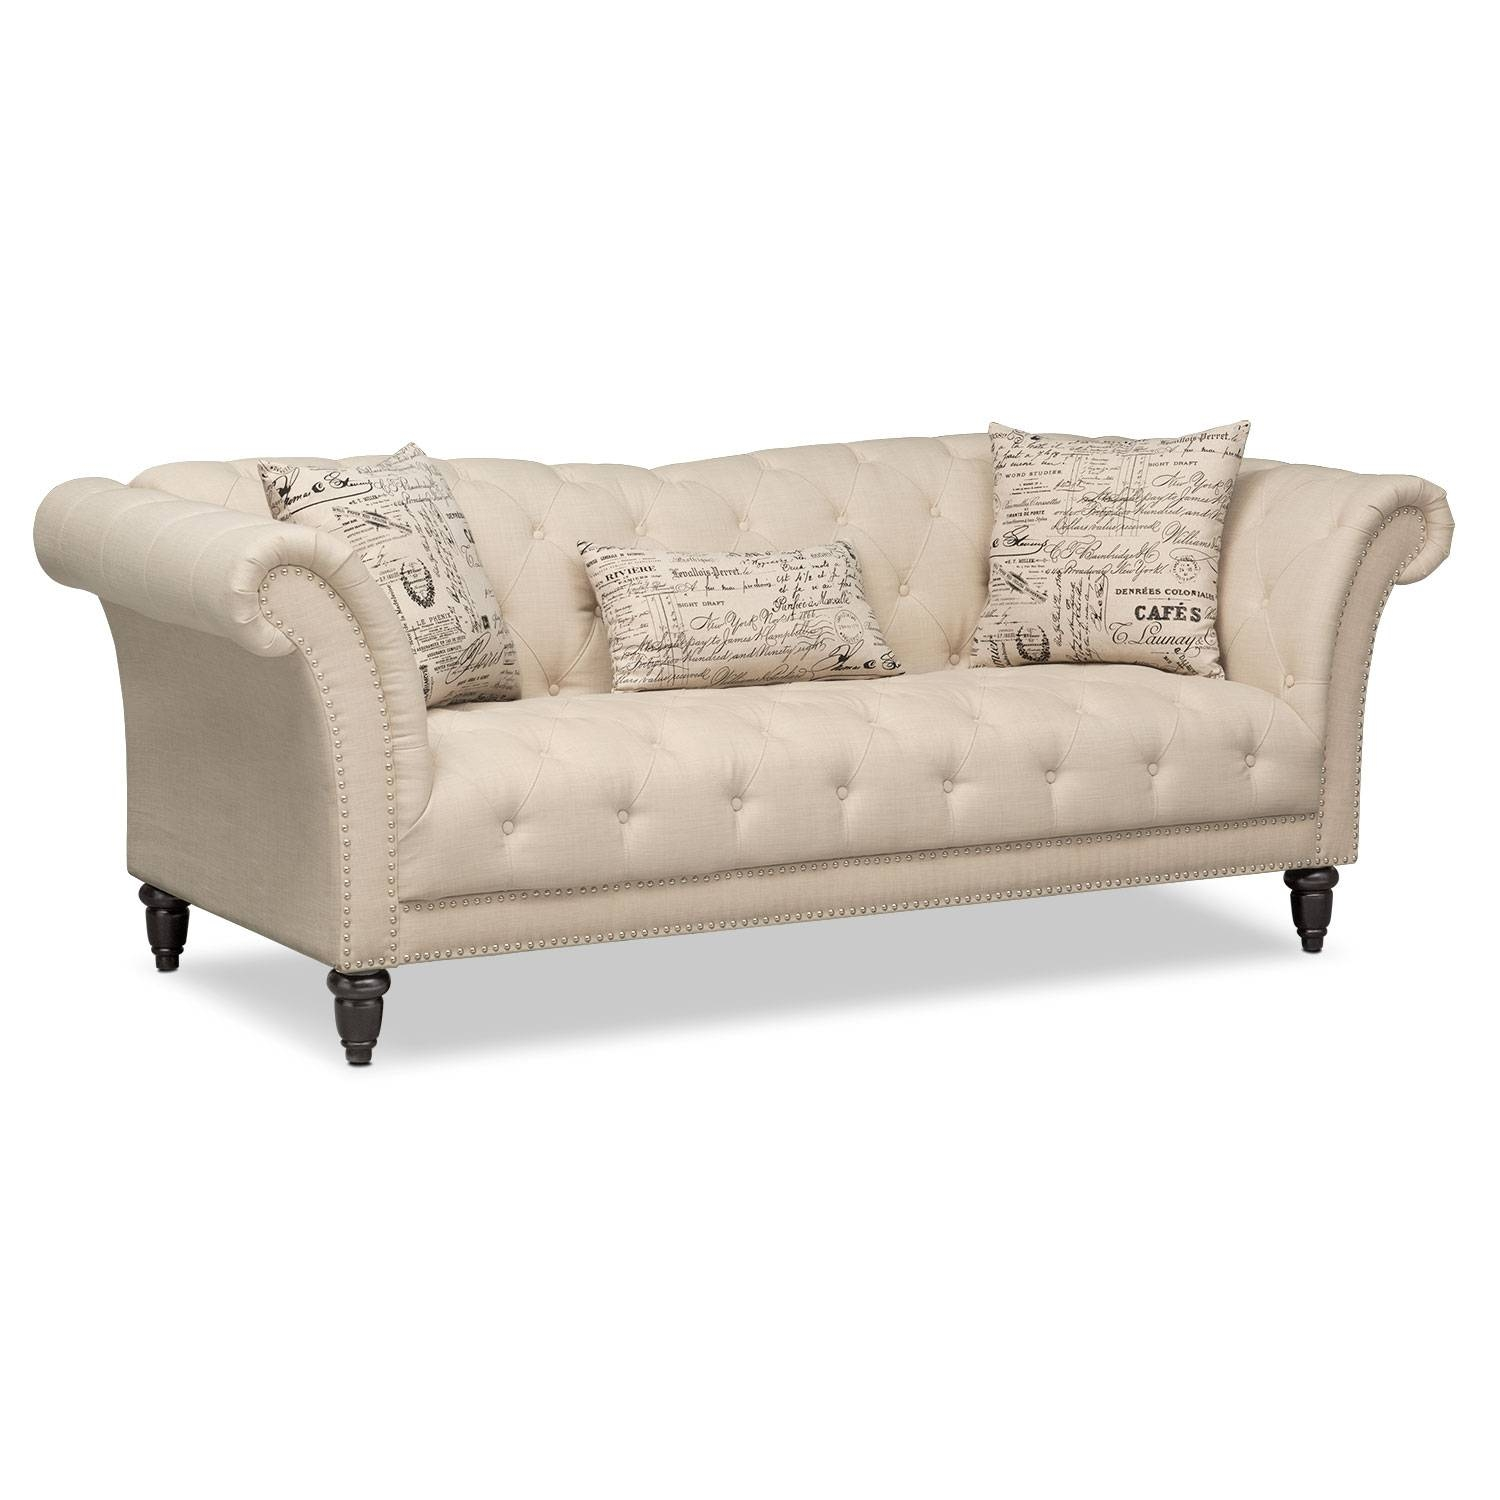 Marisol Sofa - Beige | Value City Furniture within Sofas (Image 8 of 15)